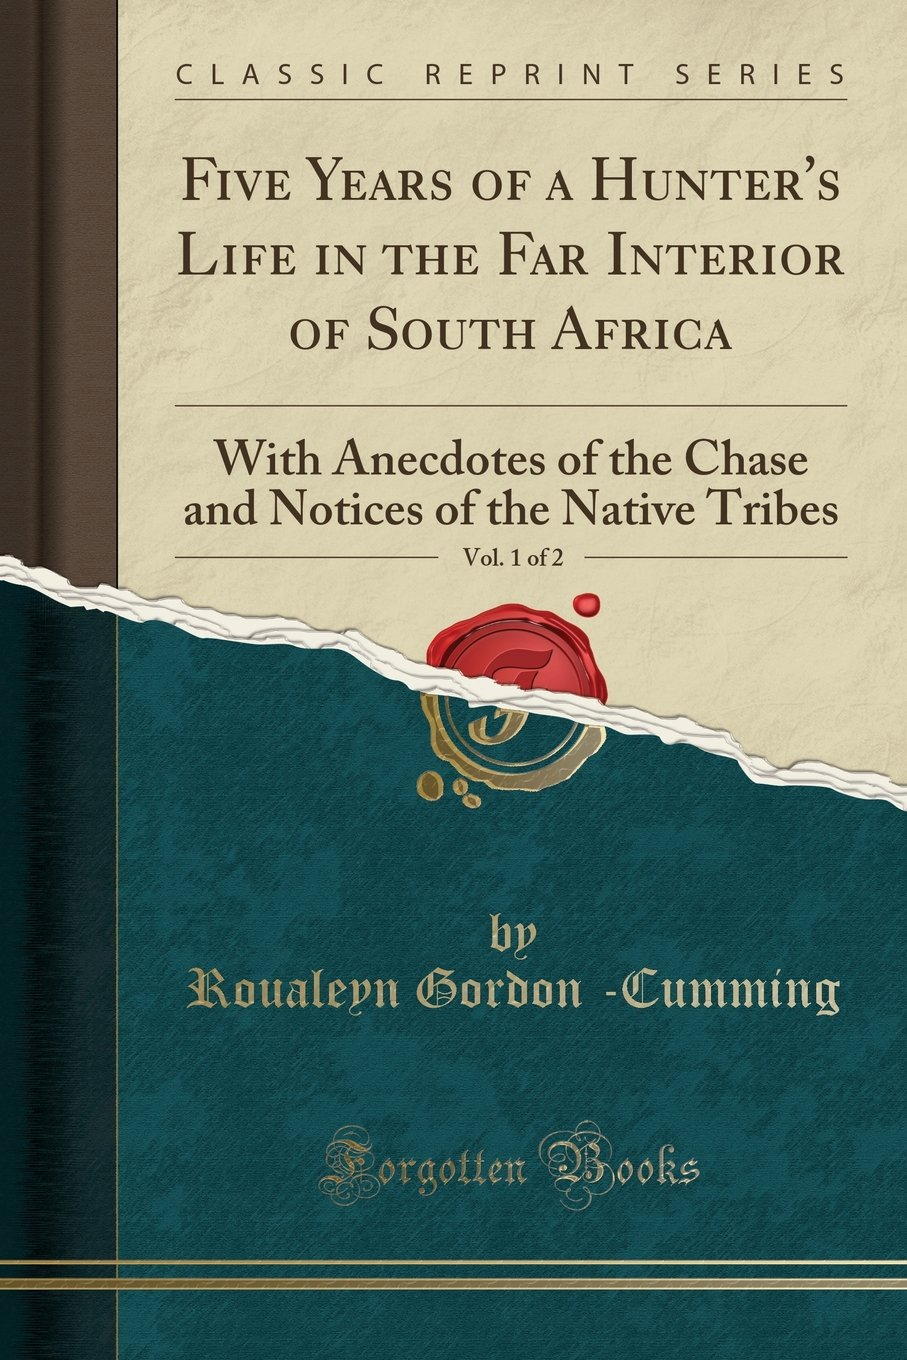 Download Five Years of a Hunter's Life in the Far Interior of South Africa, Vol. 1 of 2: With Anecdotes of the Chase and Notices of the Native Tribes (Classic Reprint) pdf